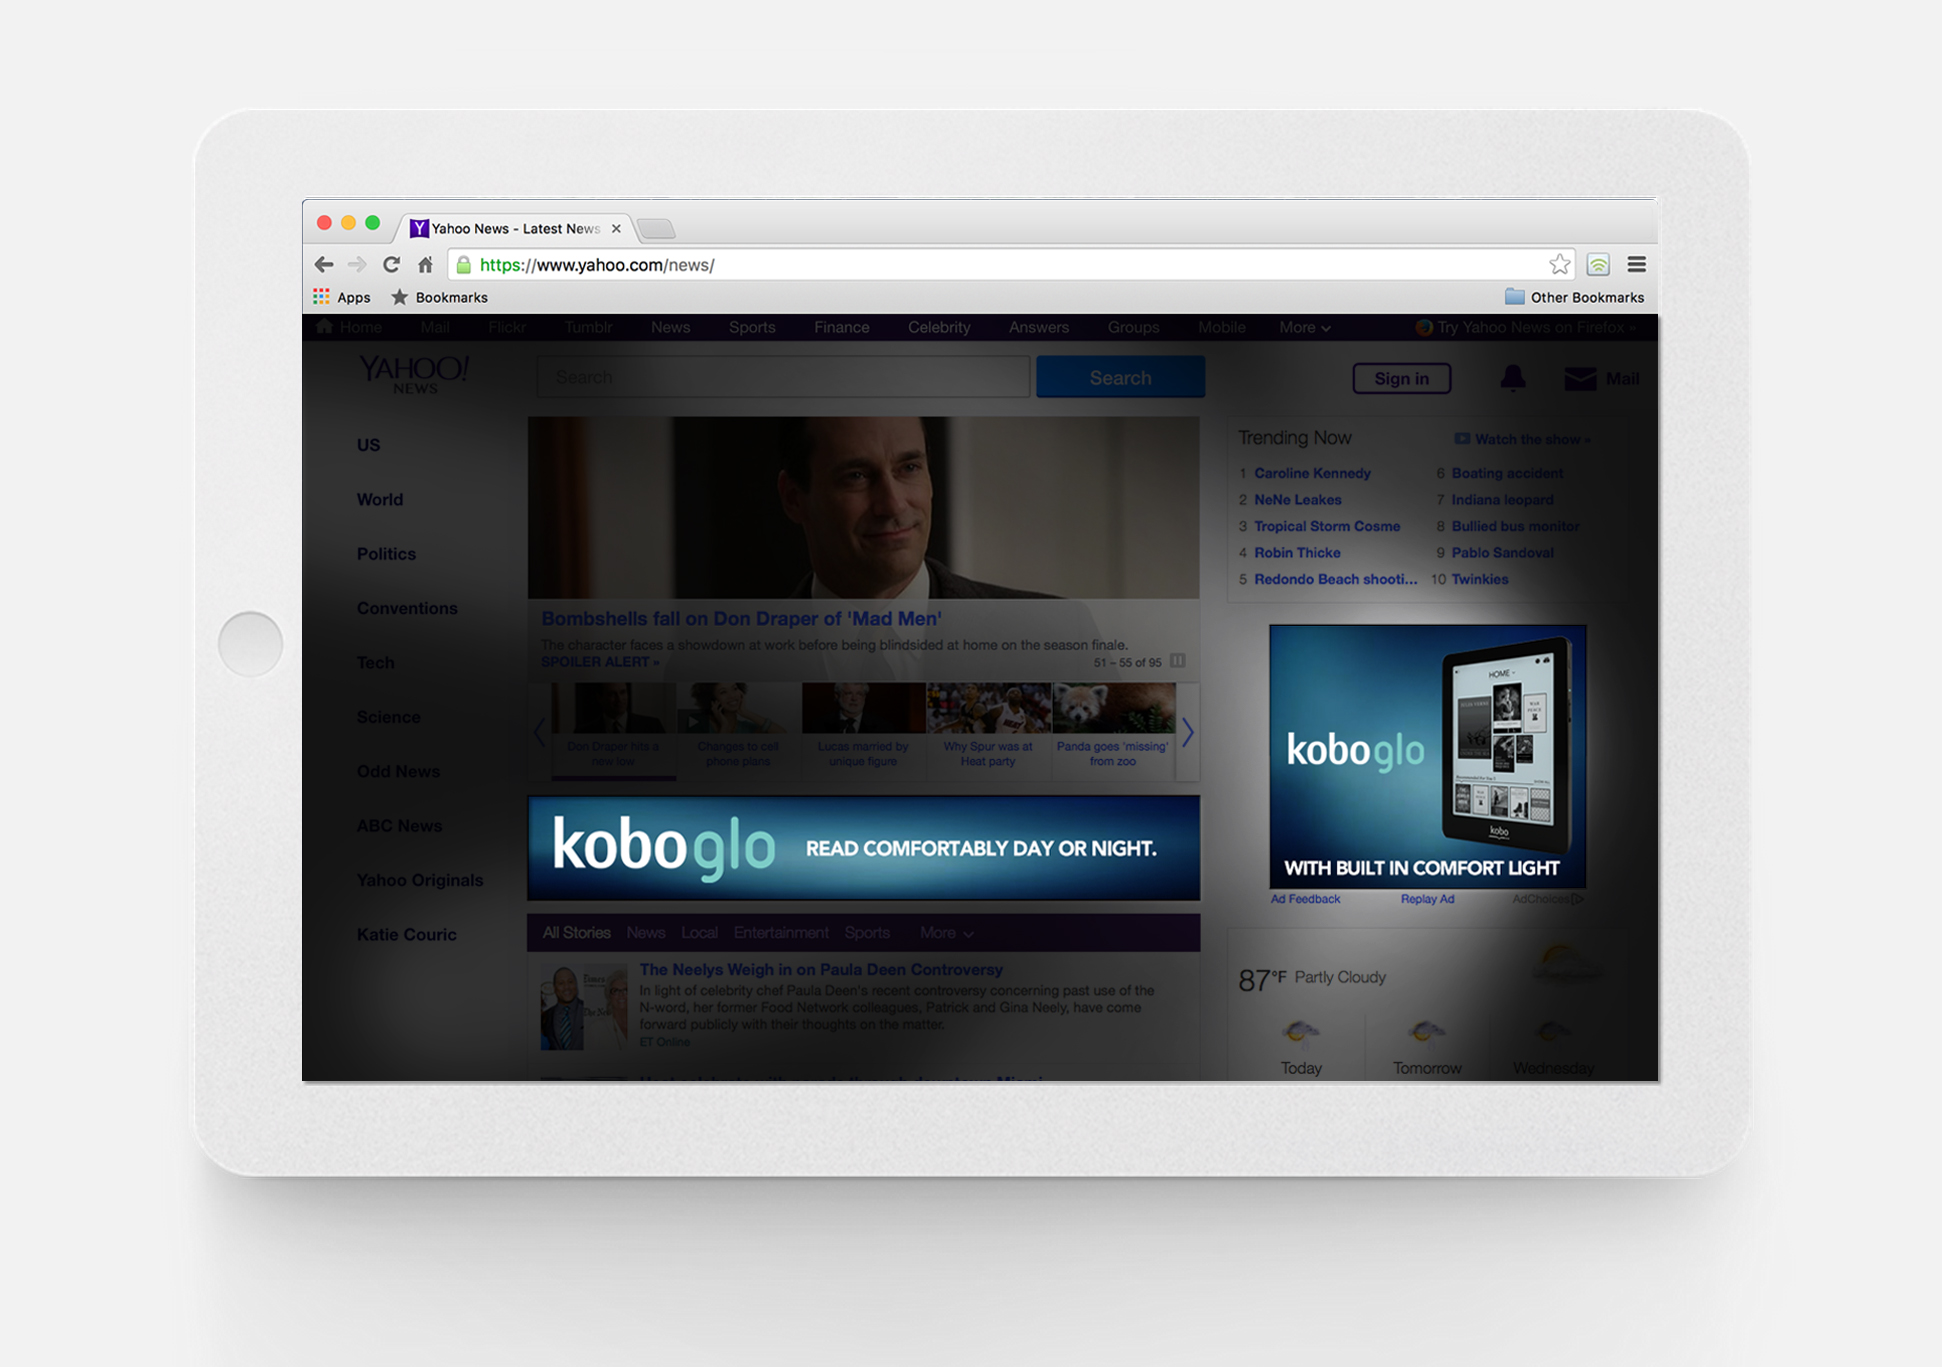 Kobo Glo banners light up the page.